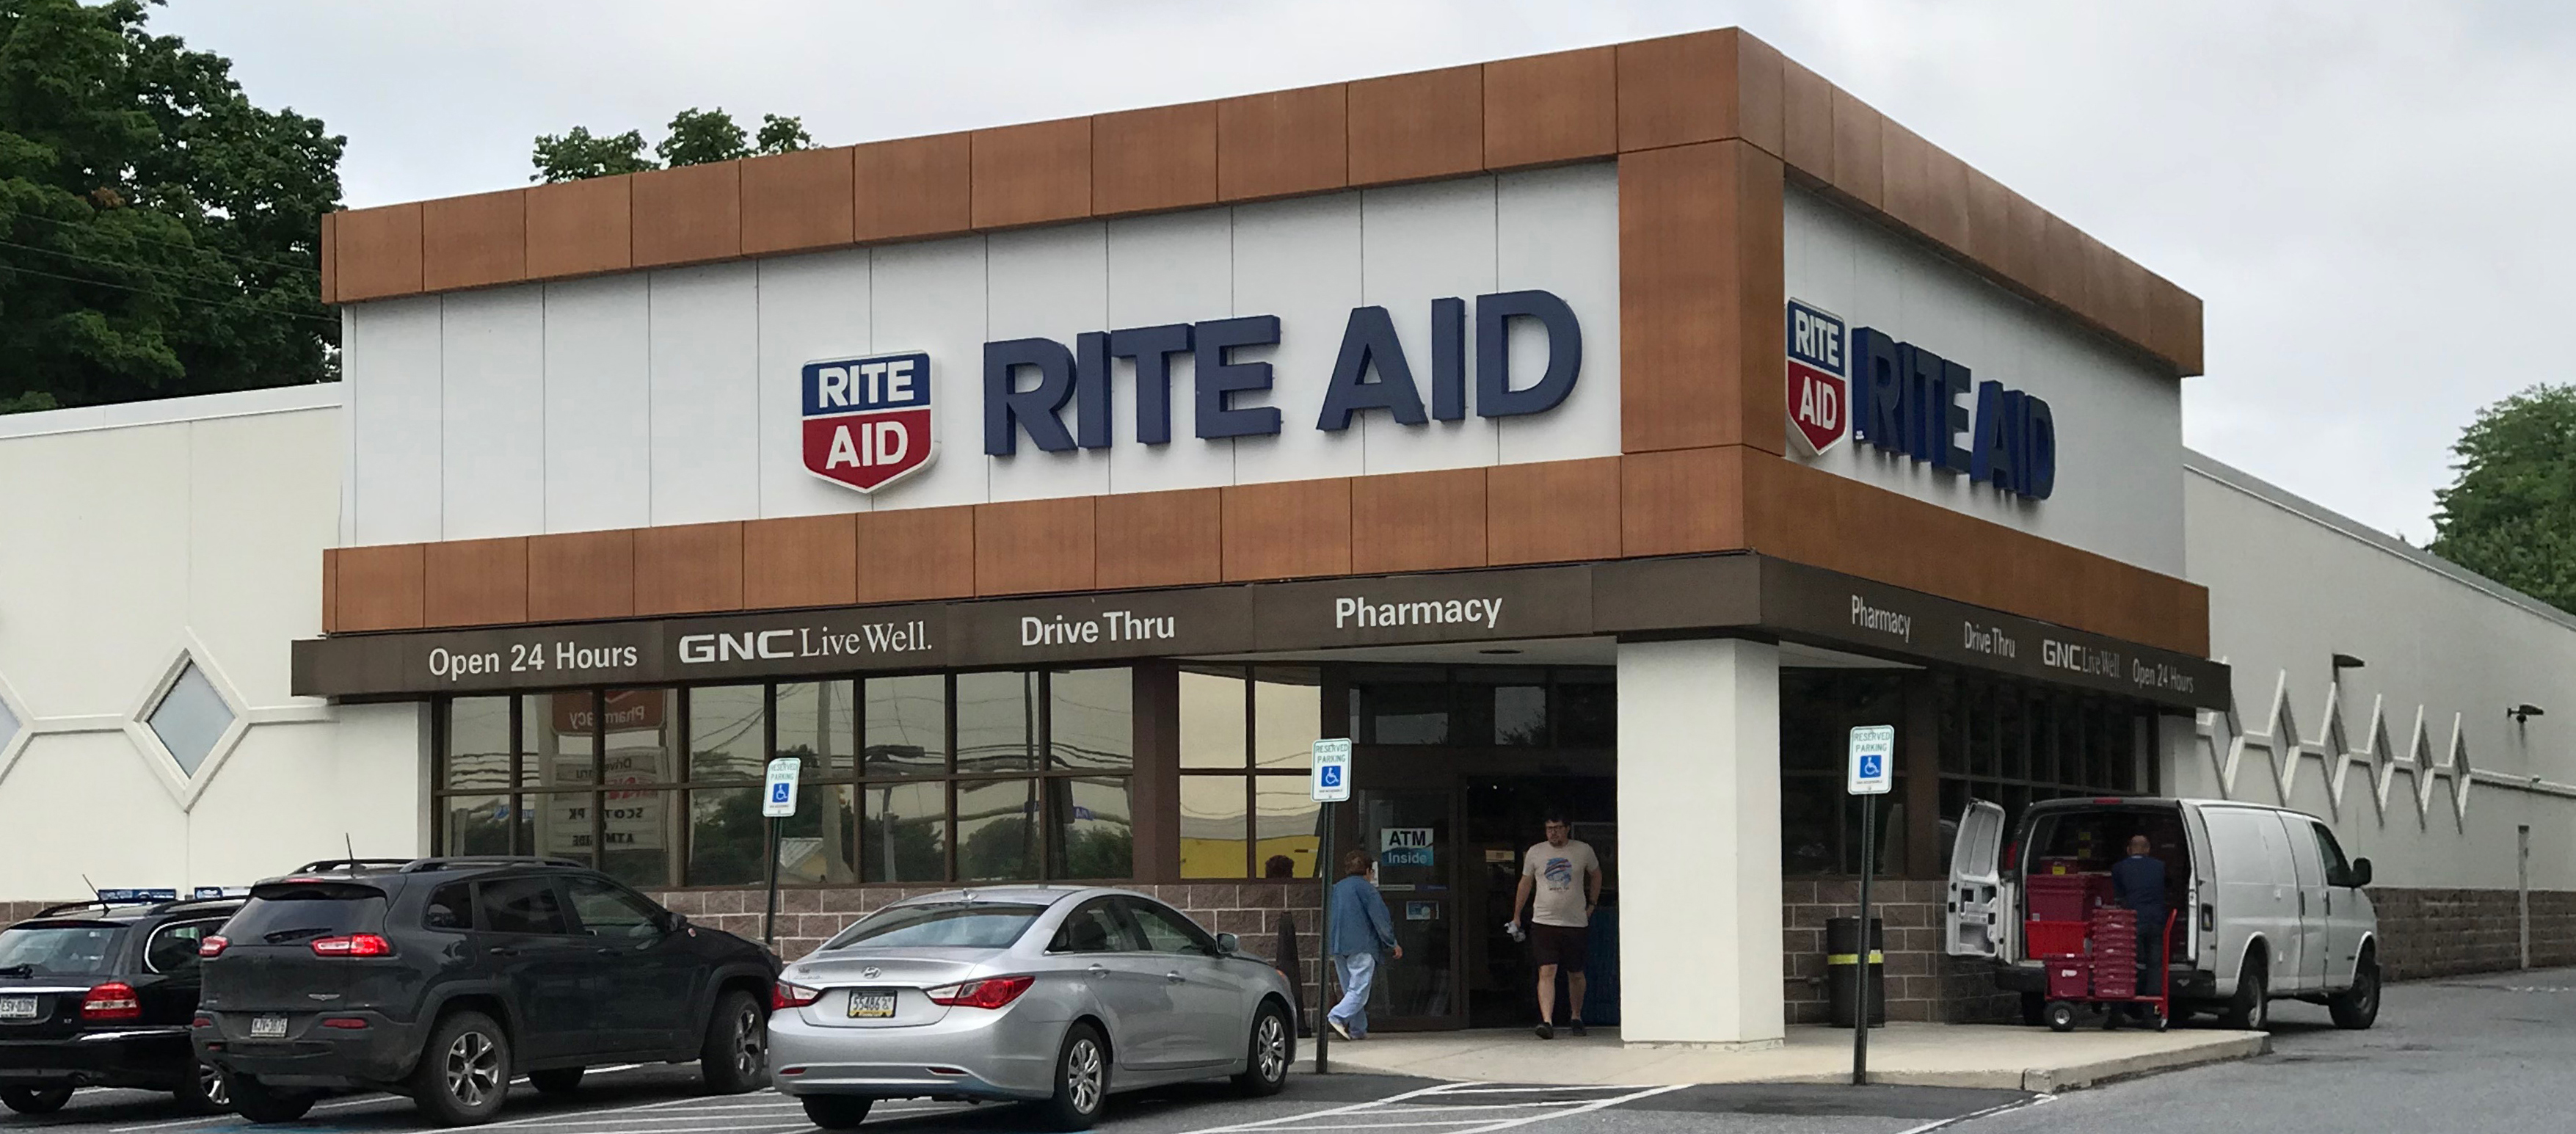 Rite Aid looks at telehealth kiosks in move with InTouch